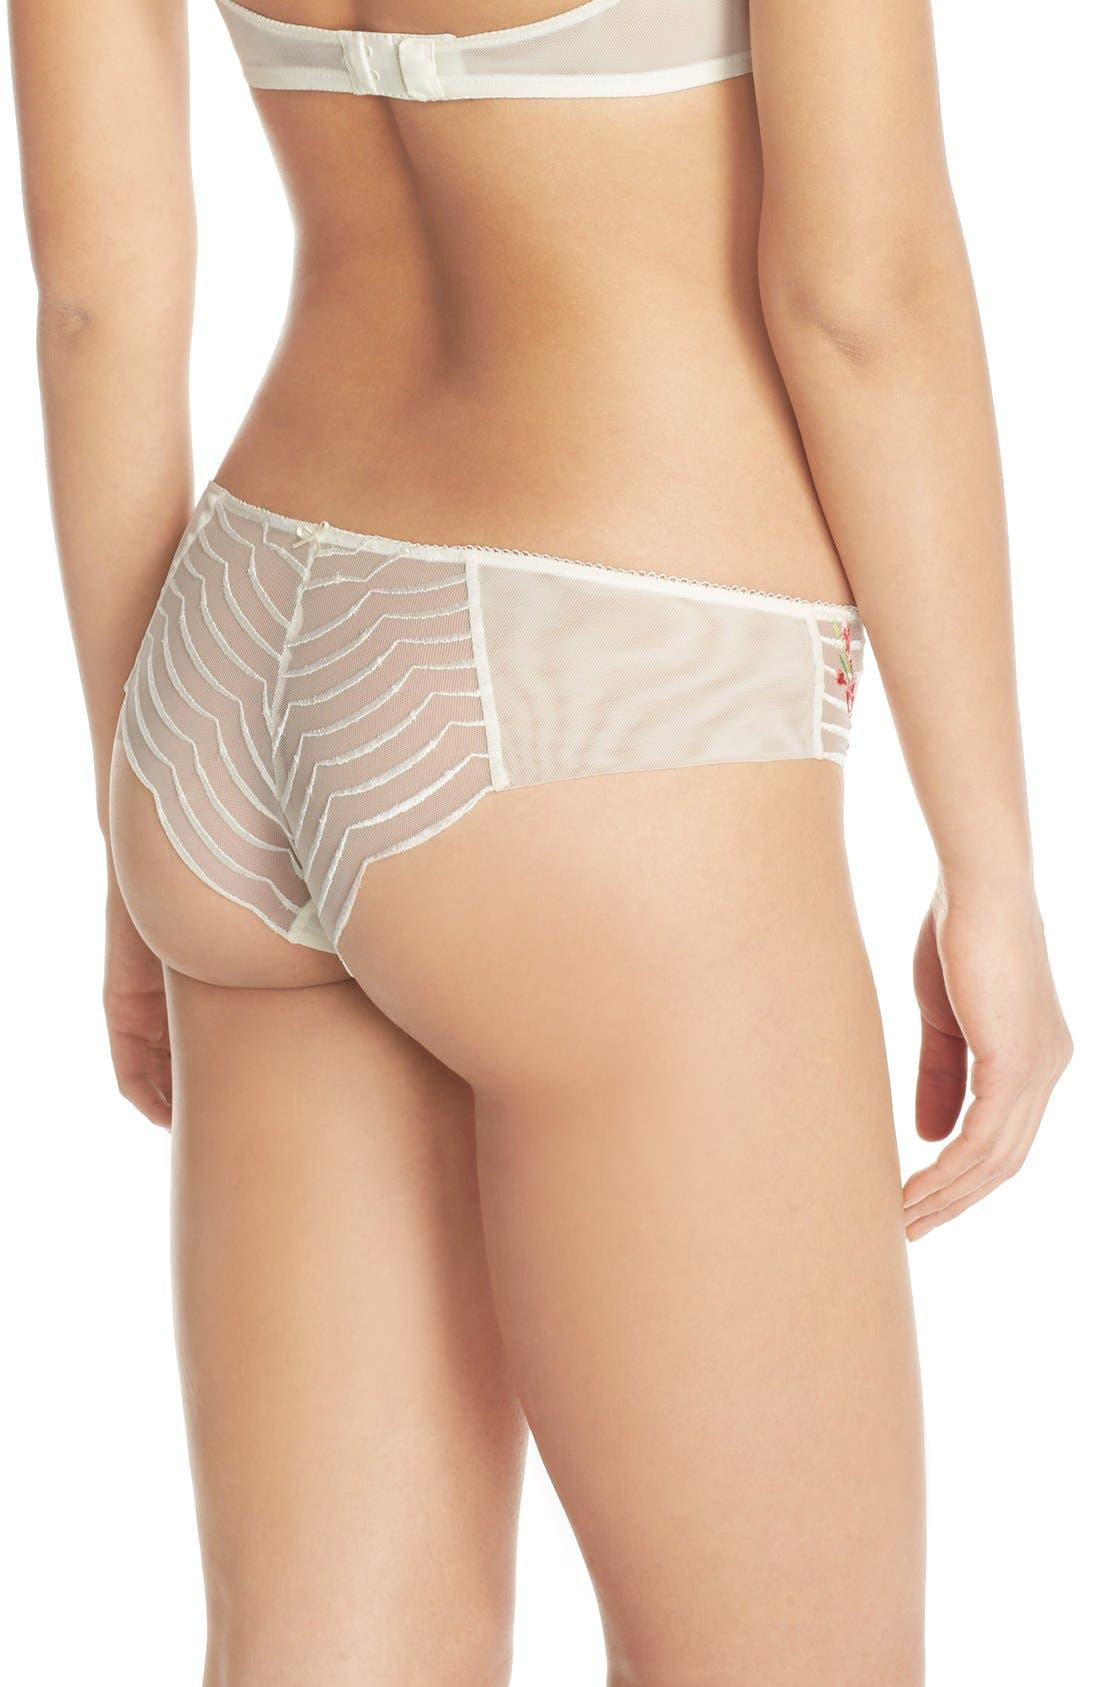 Alternate Image 2  - Wacoal 'Intuition' Embroidered Tanga